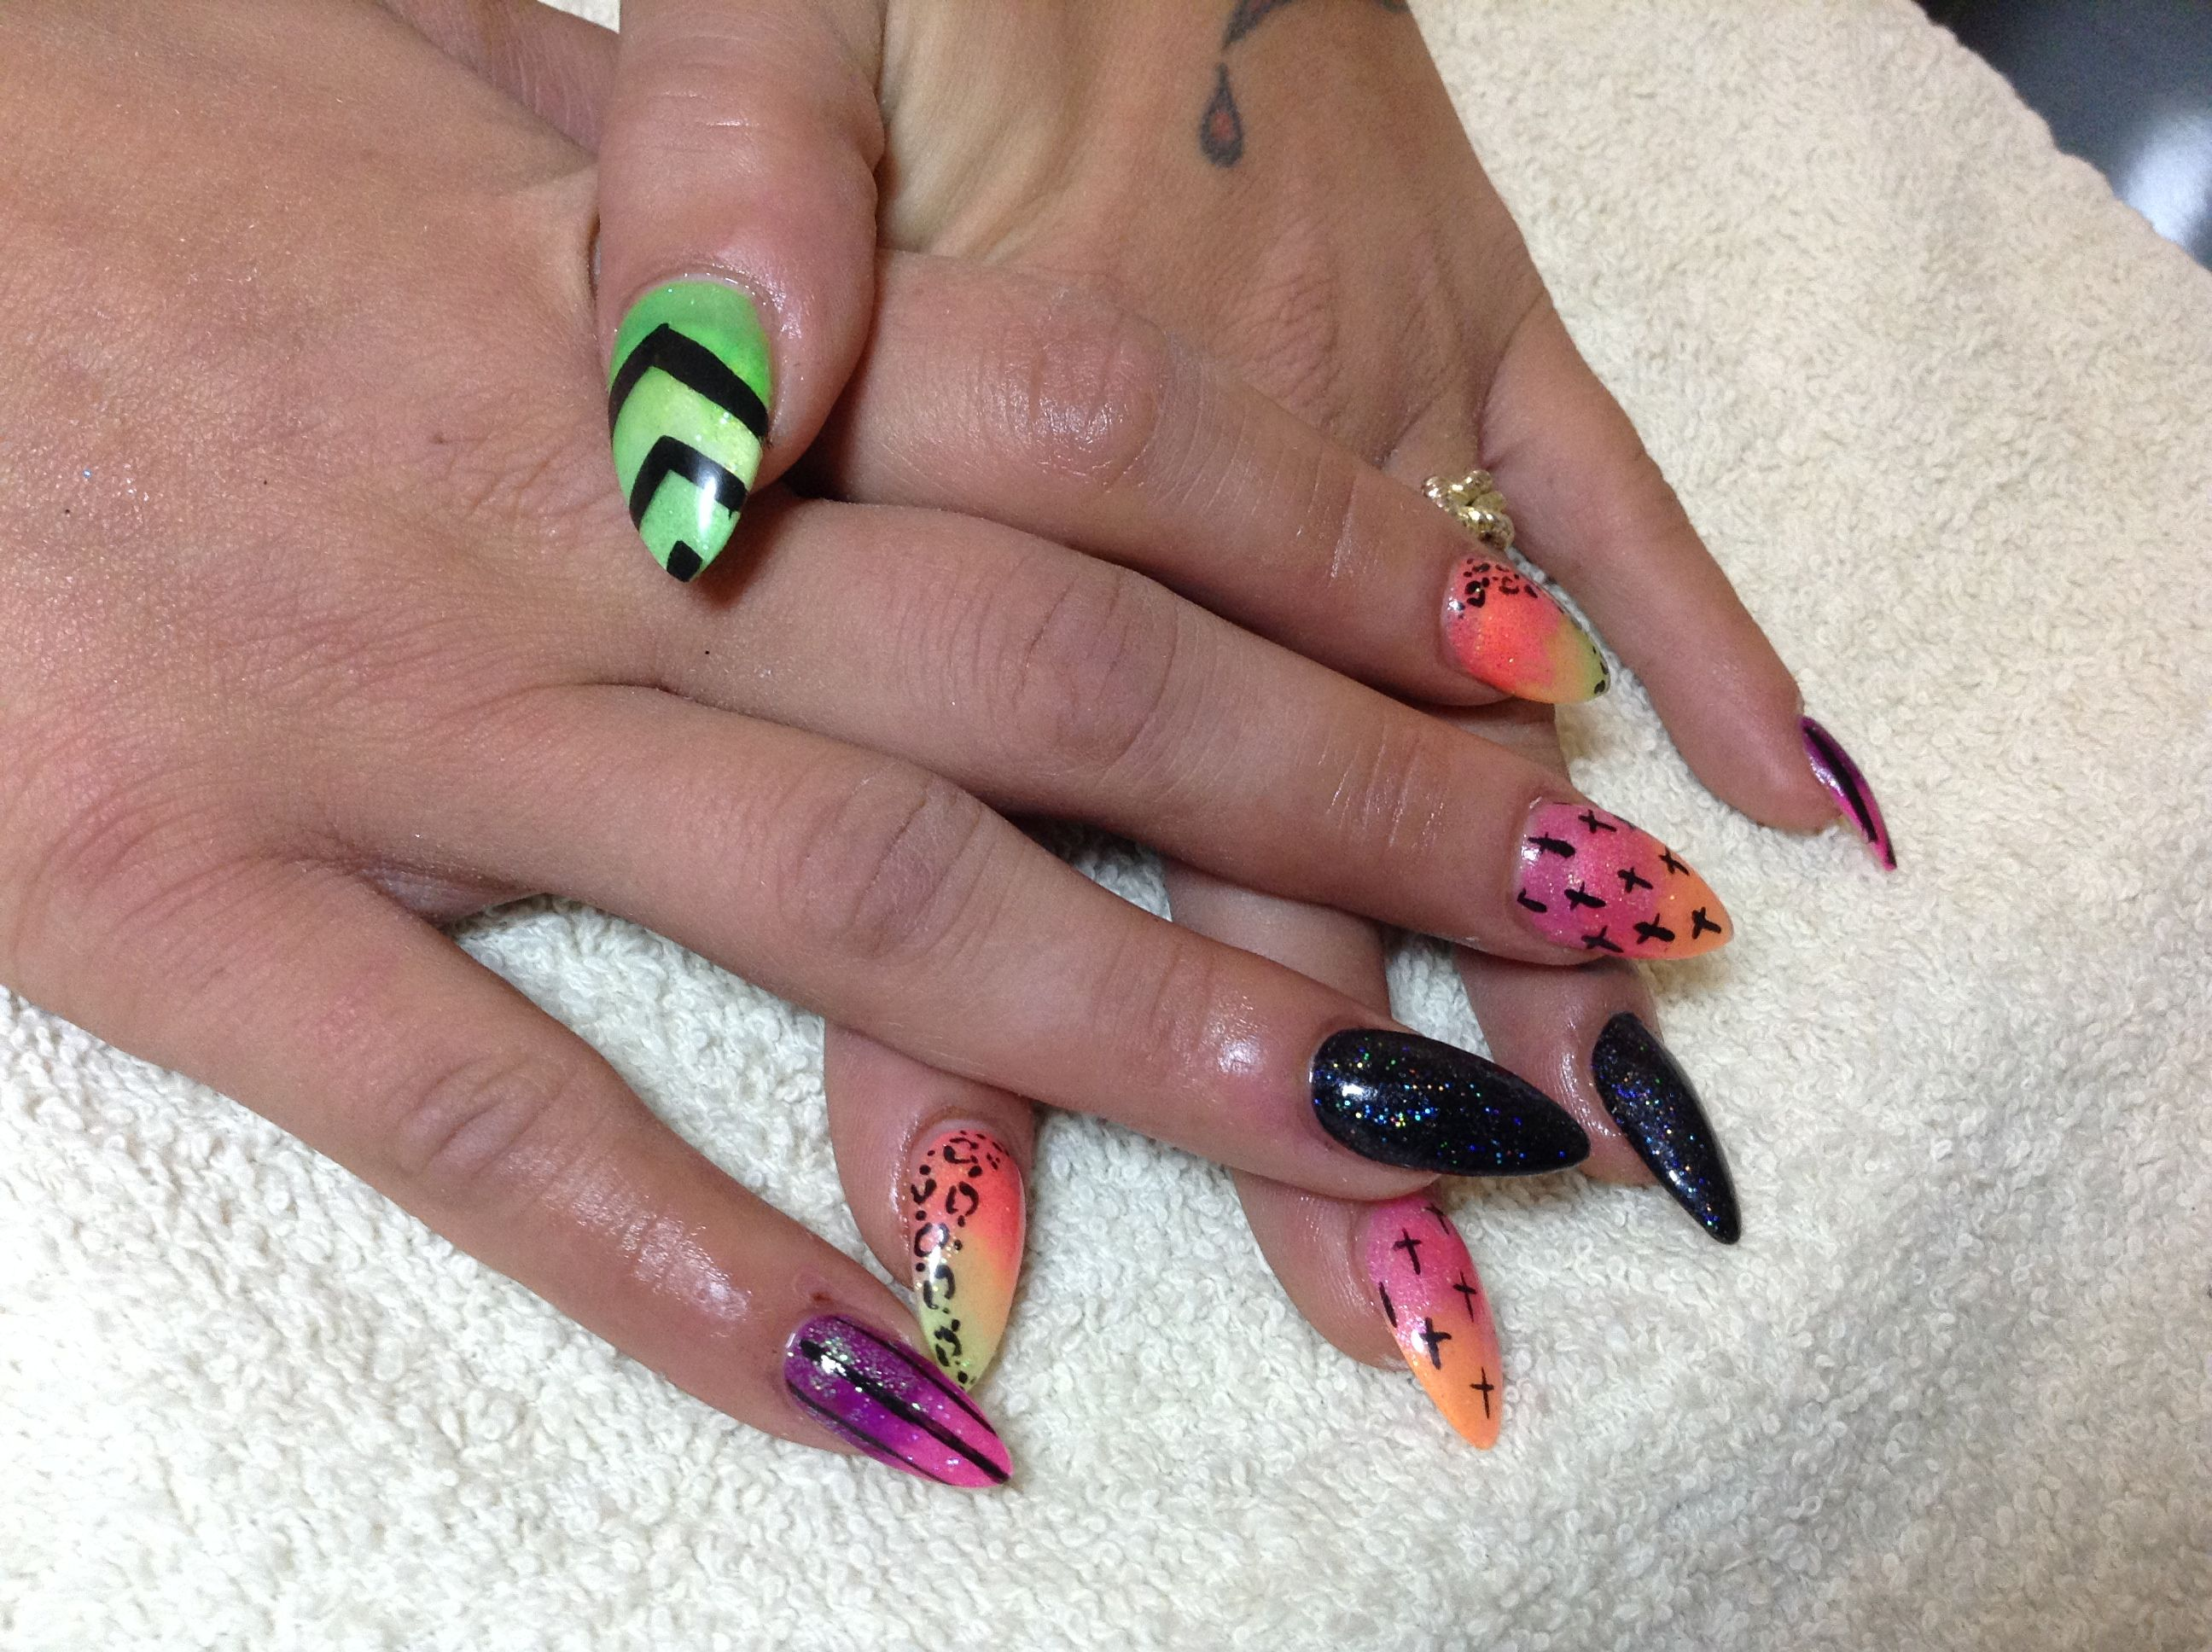 Pin by Kina Downing on My Passion   Nails, My passion, Beauty